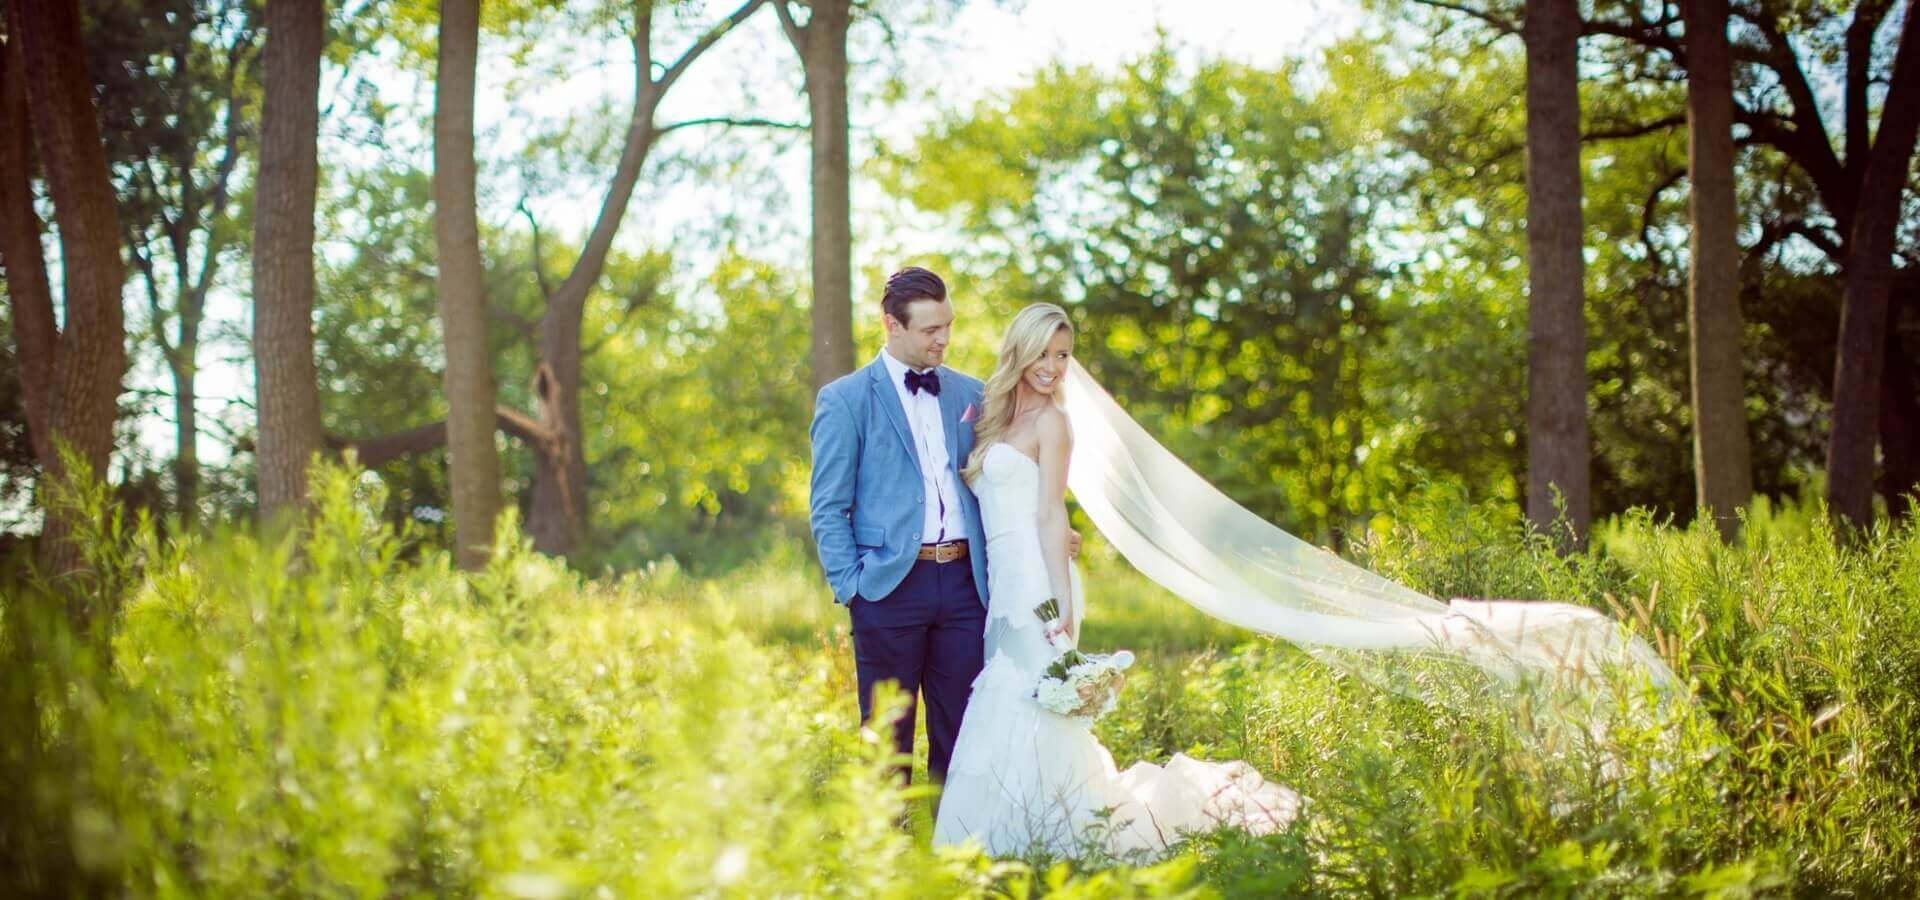 Hero image for Shannon and Stefan's Glamorous Wedding at Berkeley Church & Fieldhouse